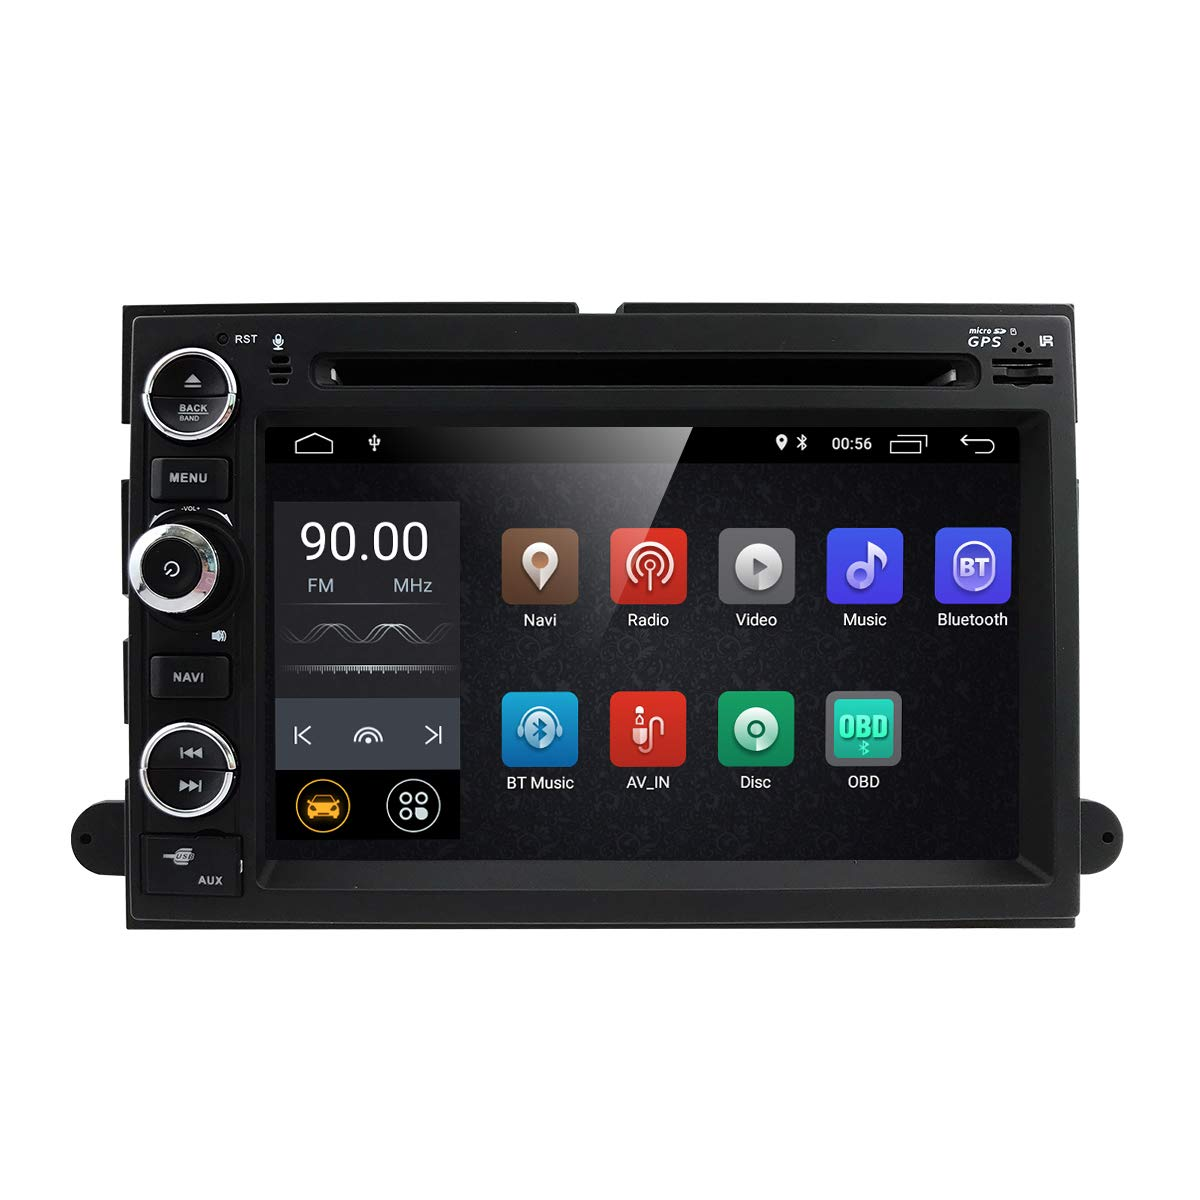 Android 81 2gb Ram Fit F Or Ford F150 F250 350 Edge Amazoncom Stereo Install Dash Kit 500 06 2006 Car Radio Wiring Fusion Mustang In Dvd Player Gps Navigation Bt Steering Wheel Ctrl Wifi